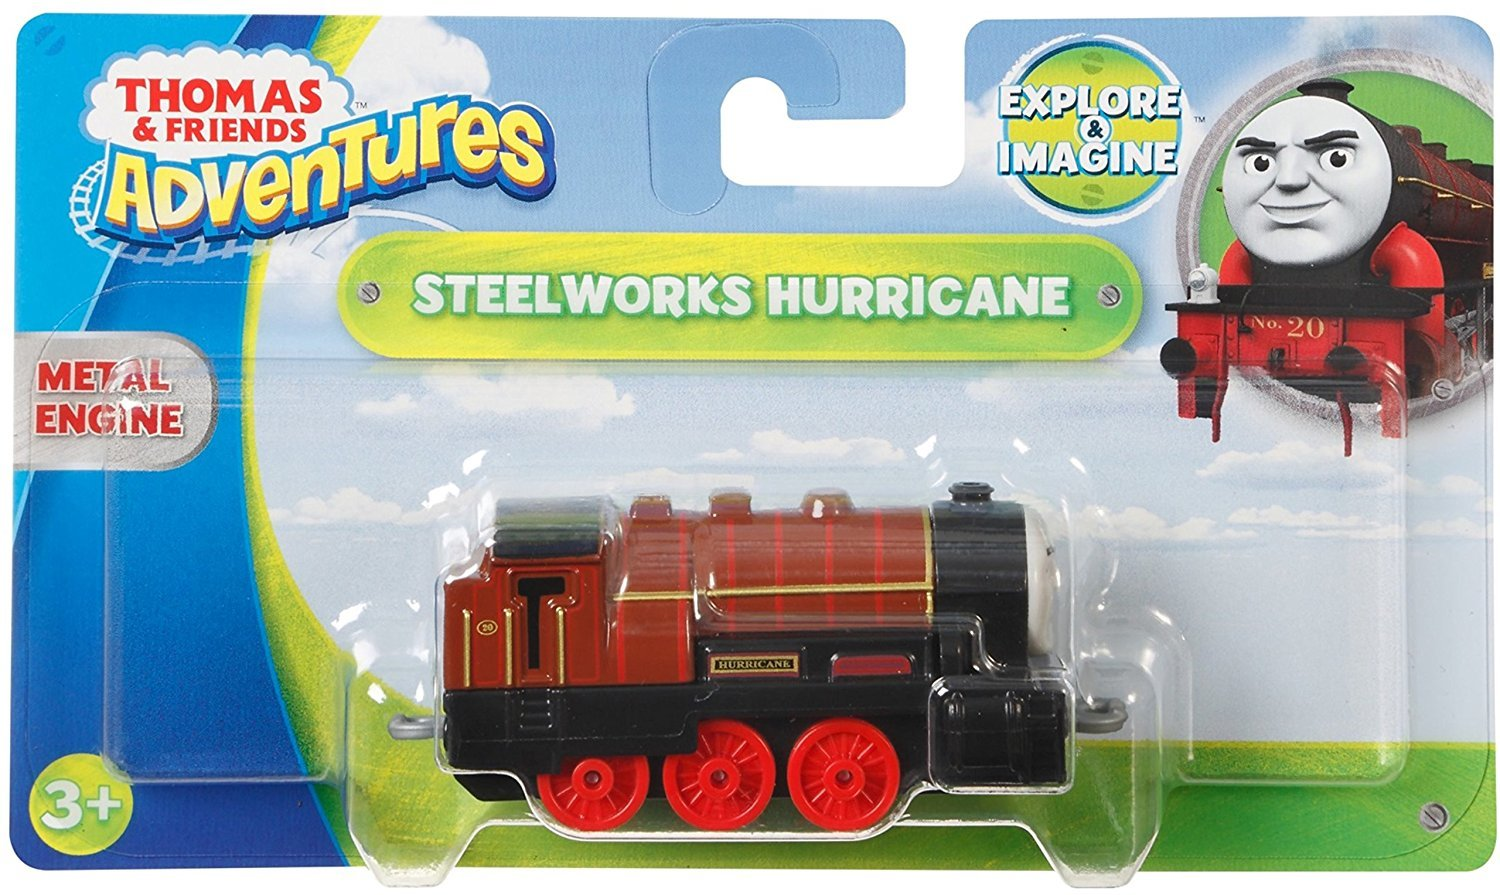 Thomas & Friends: Adventures - Steelworks Hurricane image